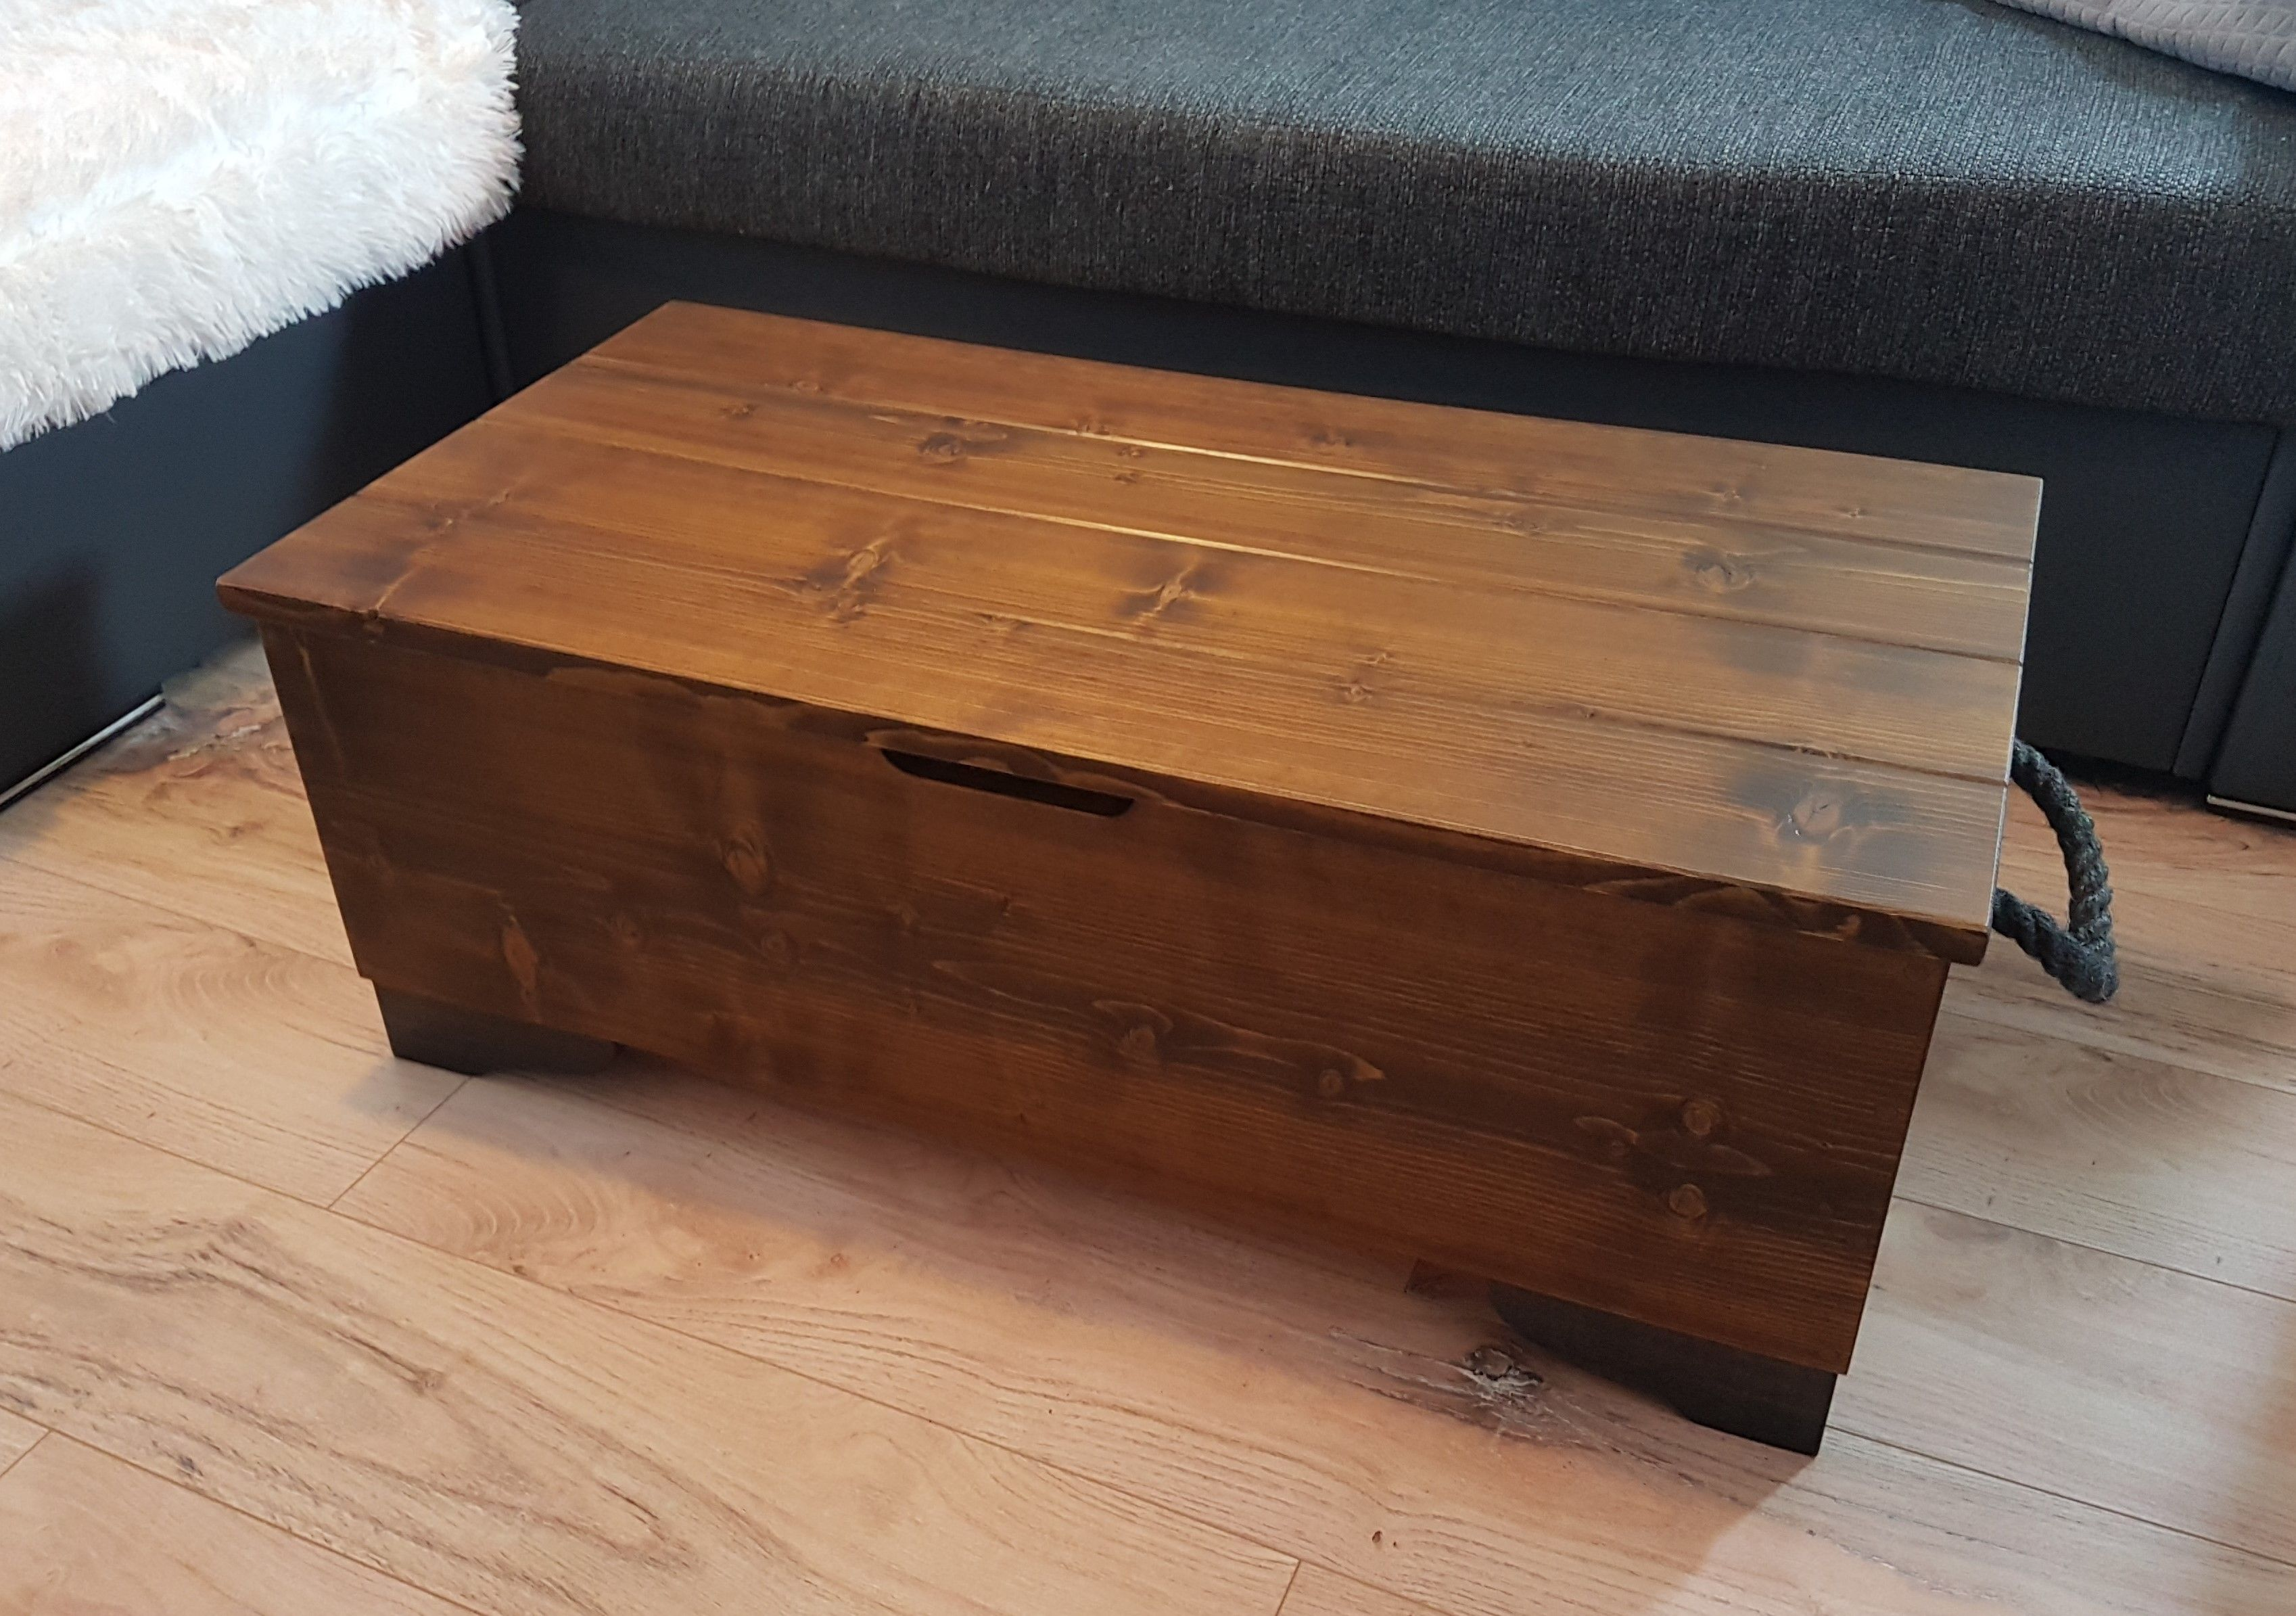 High Quality Rustic Wooden Chest Storage Trunk Blanket Box Etsy Wooden Chest Blanket Box Coffee Table Vintage [ 2389 x 3395 Pixel ]